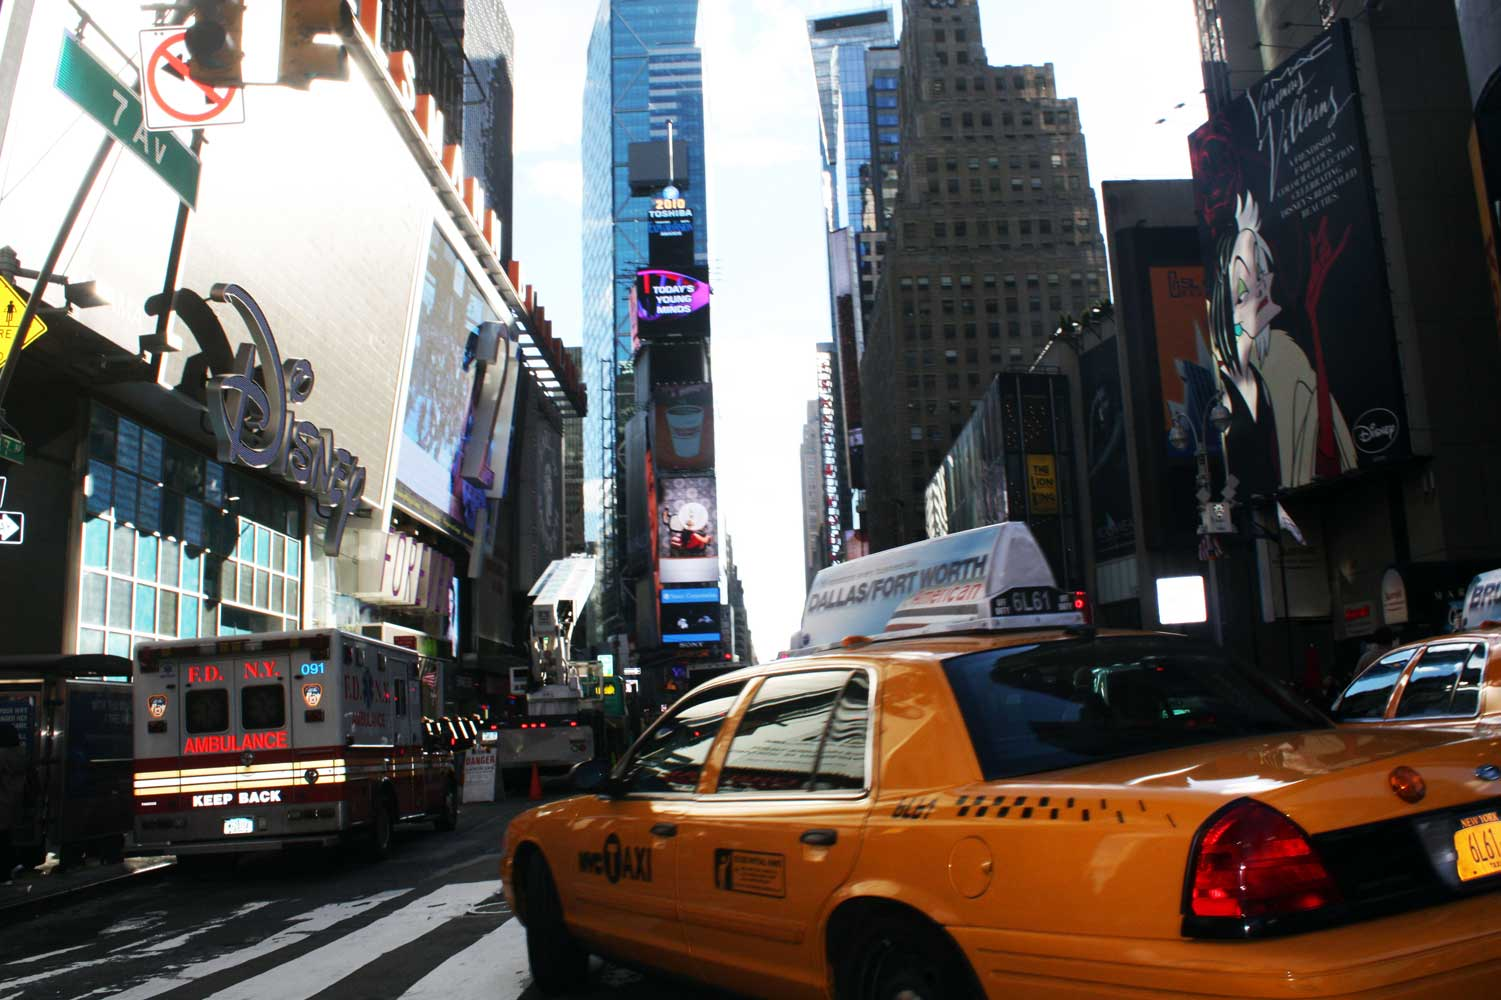 New York is ALWAYS a good idea! I can't wait to go back as a tourist, not a commuter.